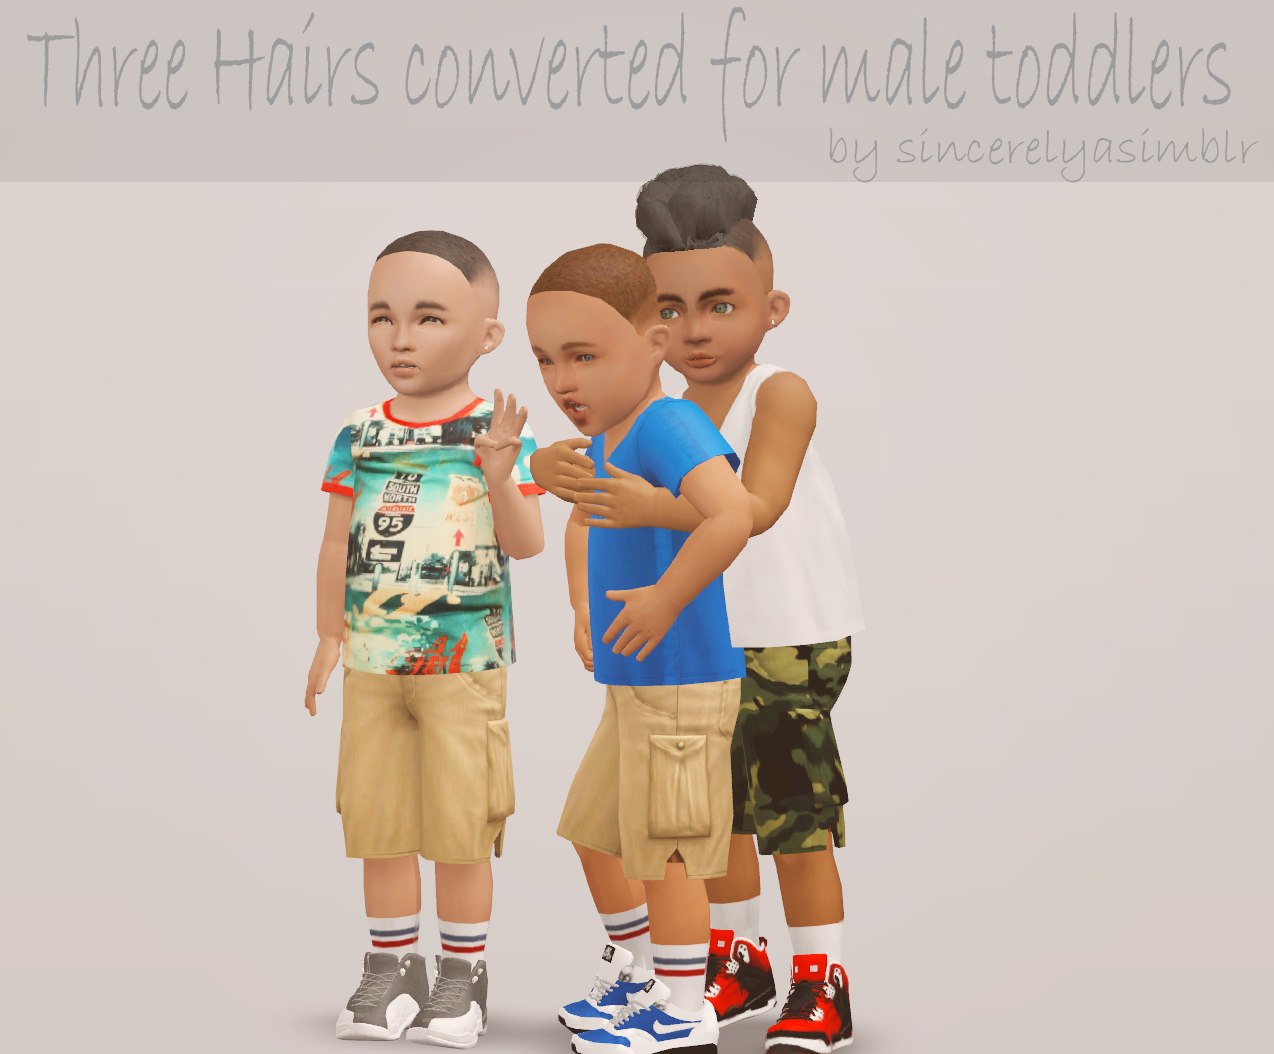 Hair Conversions for Male Toddlers by Sincerelyasimblr